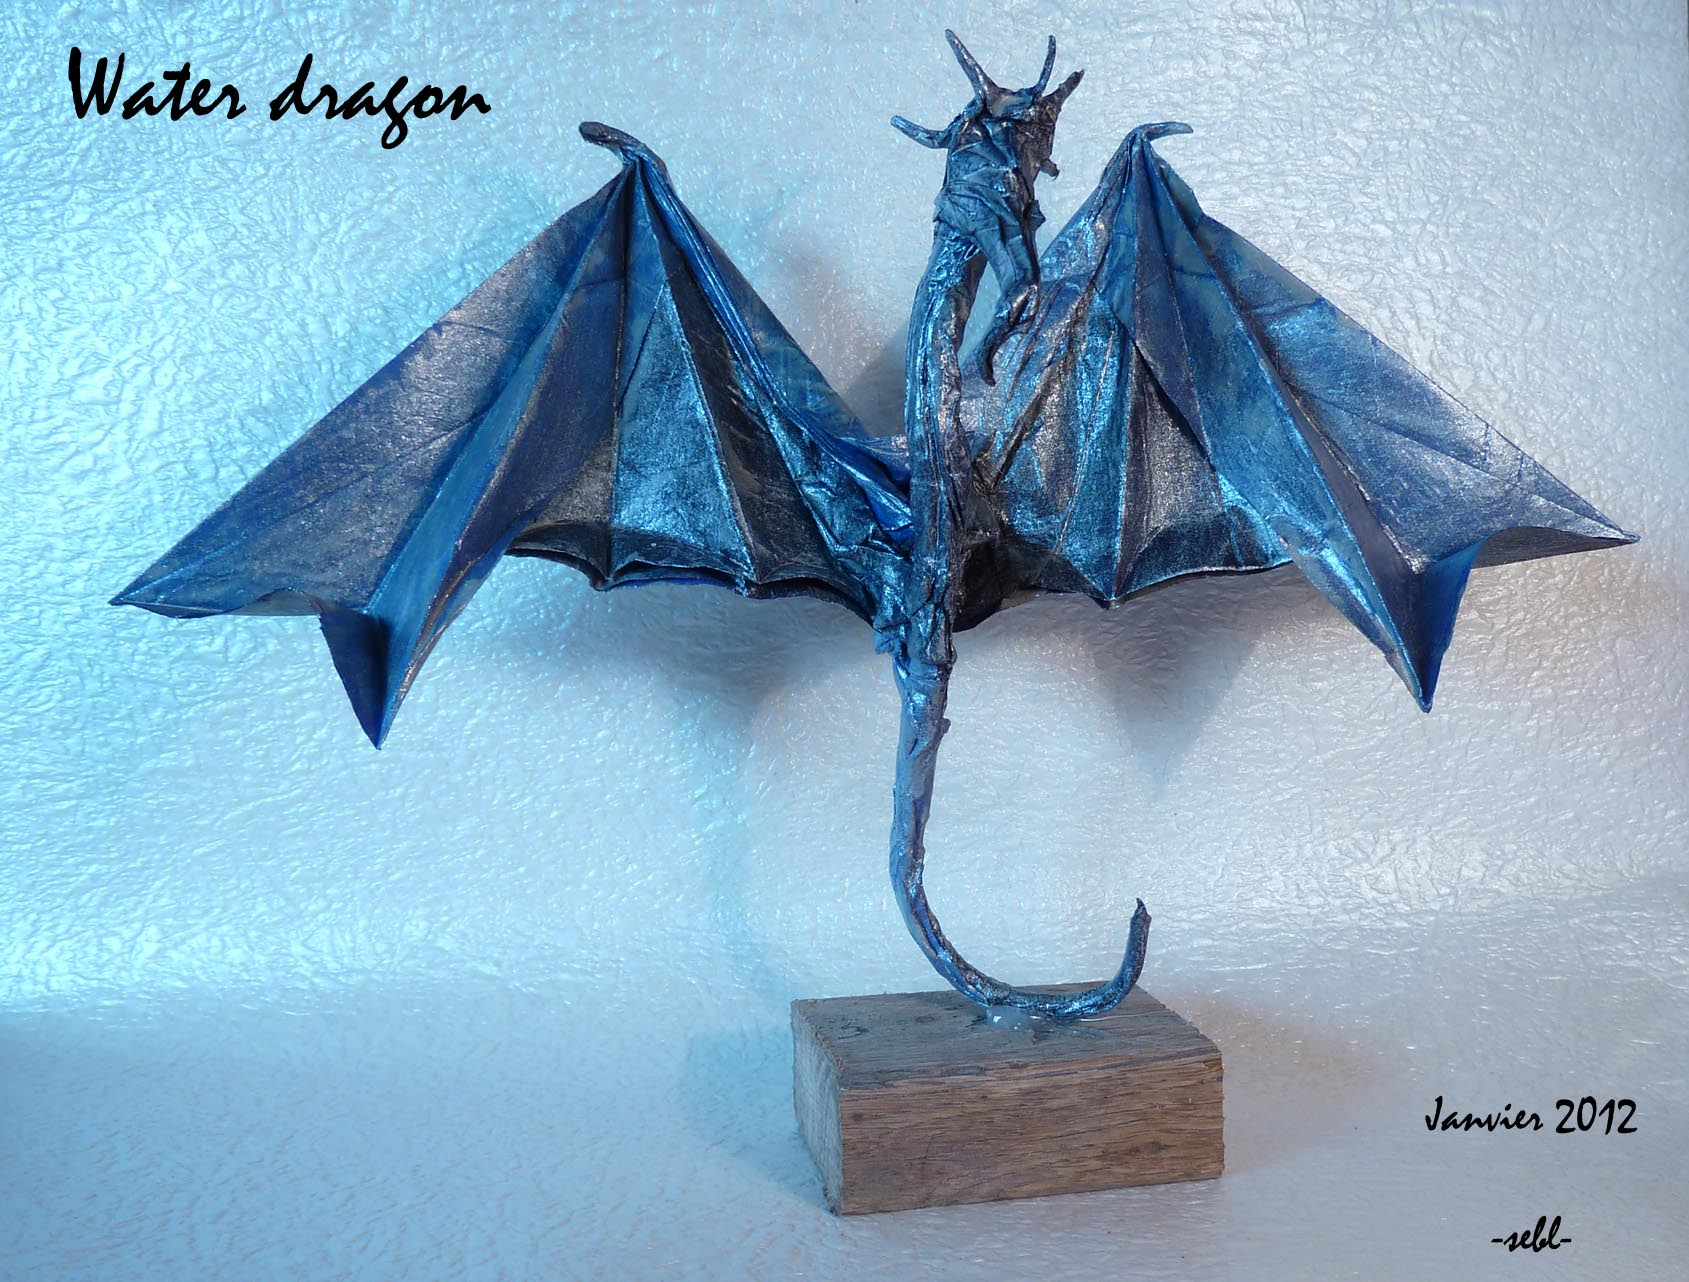 eric joisel origami mermaid diagram 2016 f150 headlight switch wiring dragon d 39eau limet sébastien passion